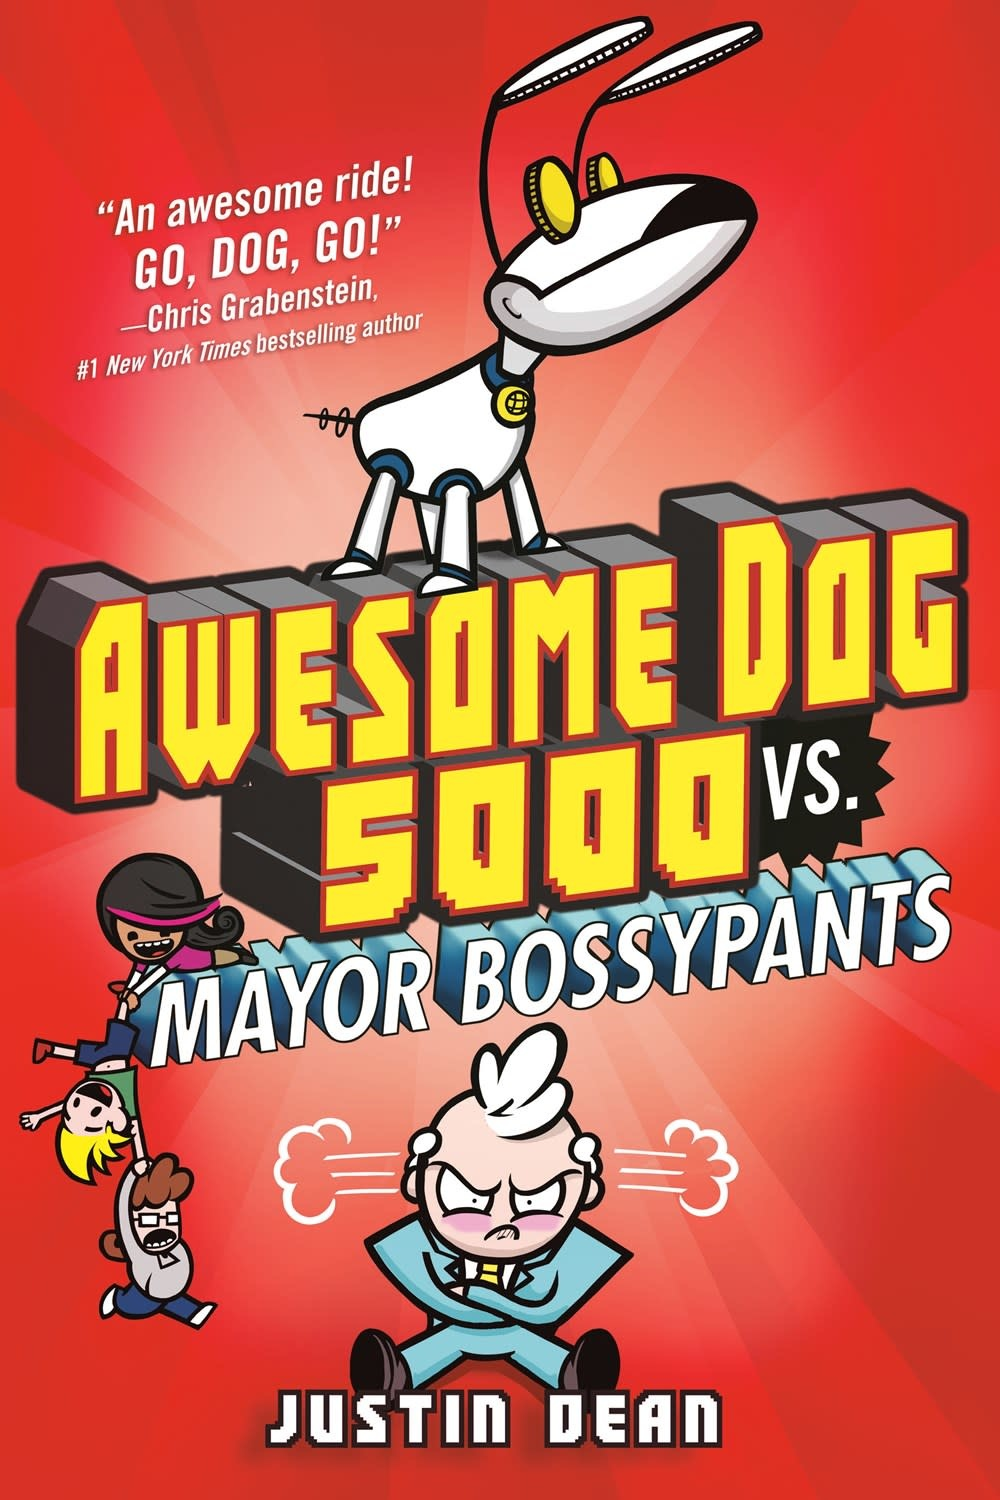 Random House Books for Young Readers Awesome Dog 5000 02 vs. Mayor Bossypants